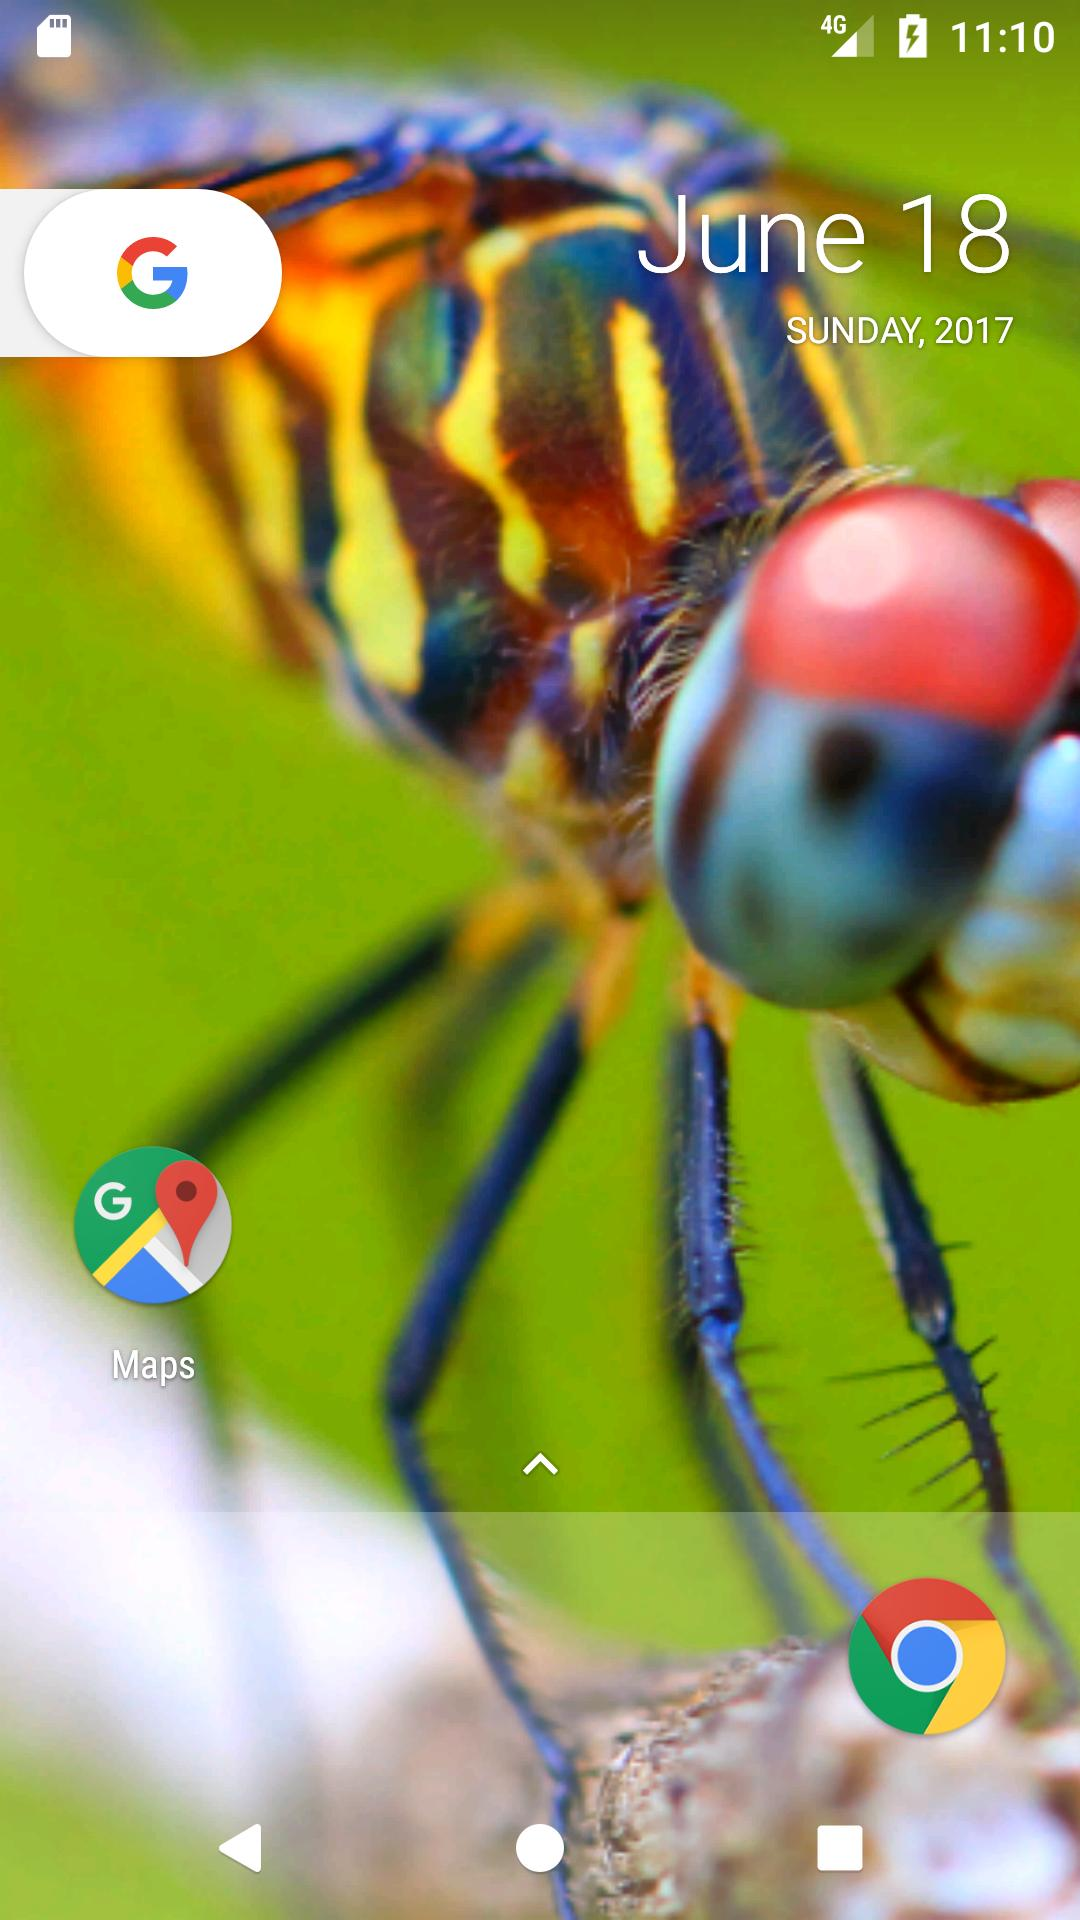 Best dragonfly hd free wallpaper for android apk download - Free dragonfly wallpaper for android ...